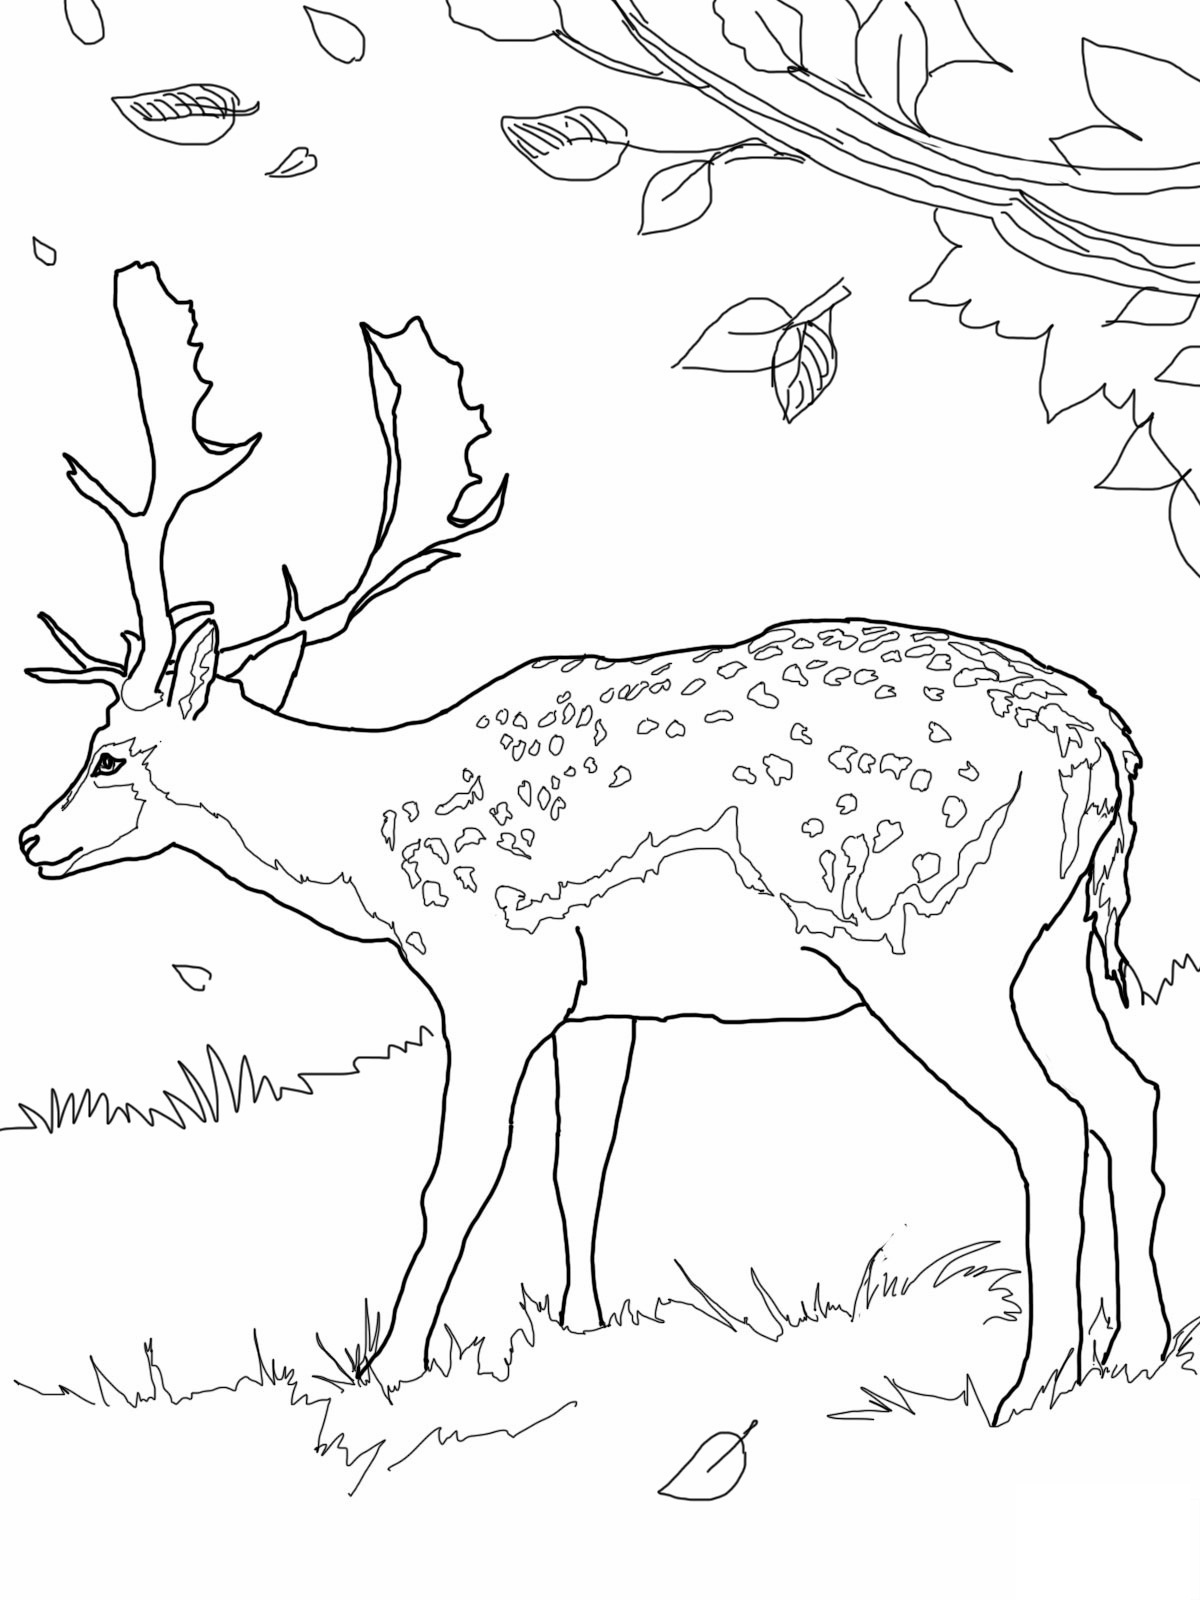 1200x1600 Deer Head Coloring Page Image Clipart Images